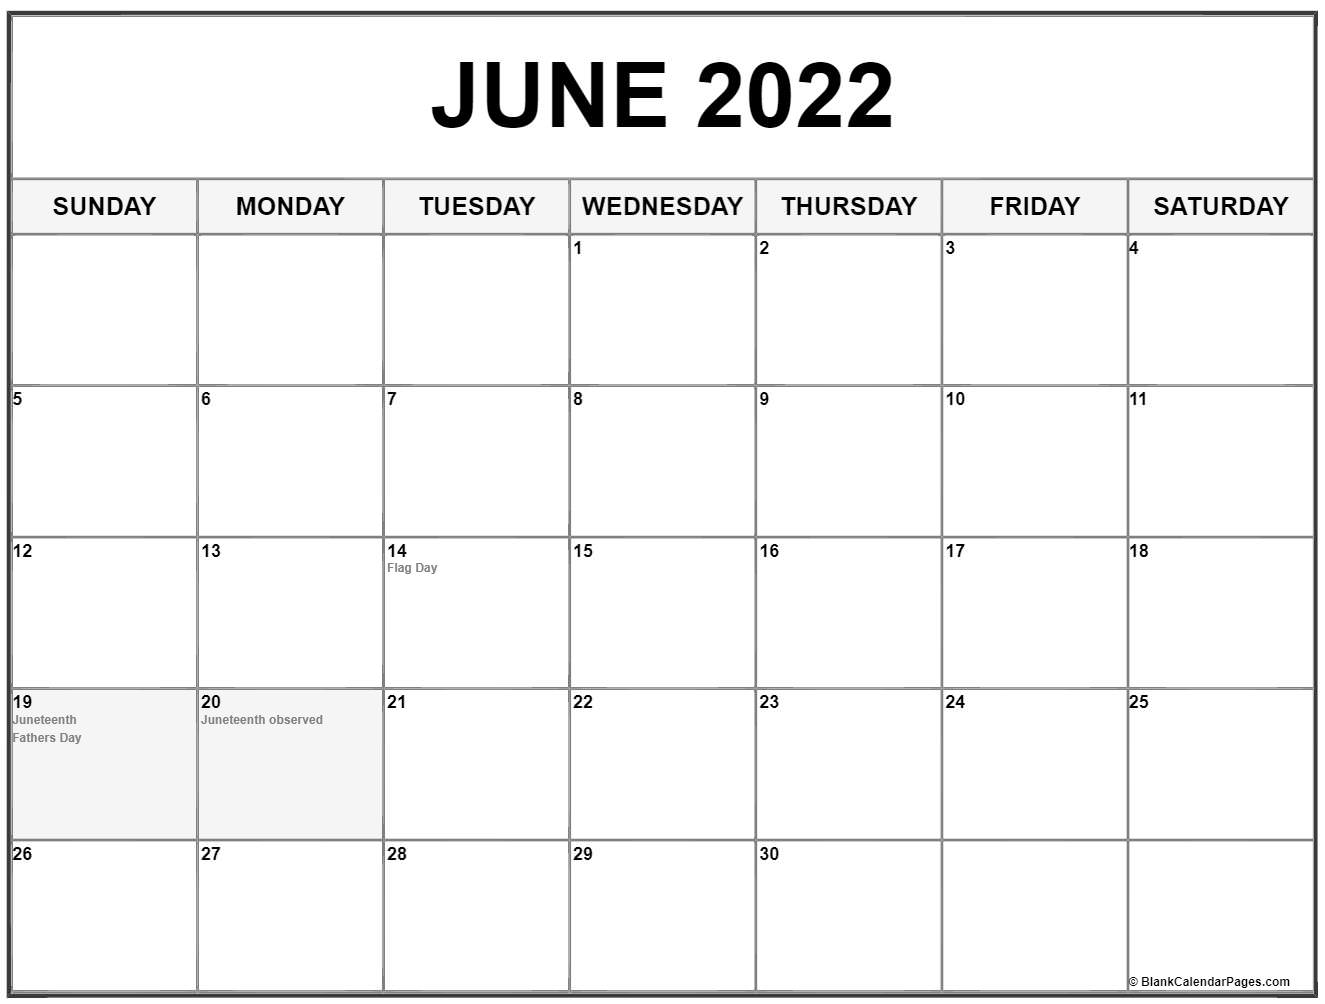 June 2022 calendar with holidays